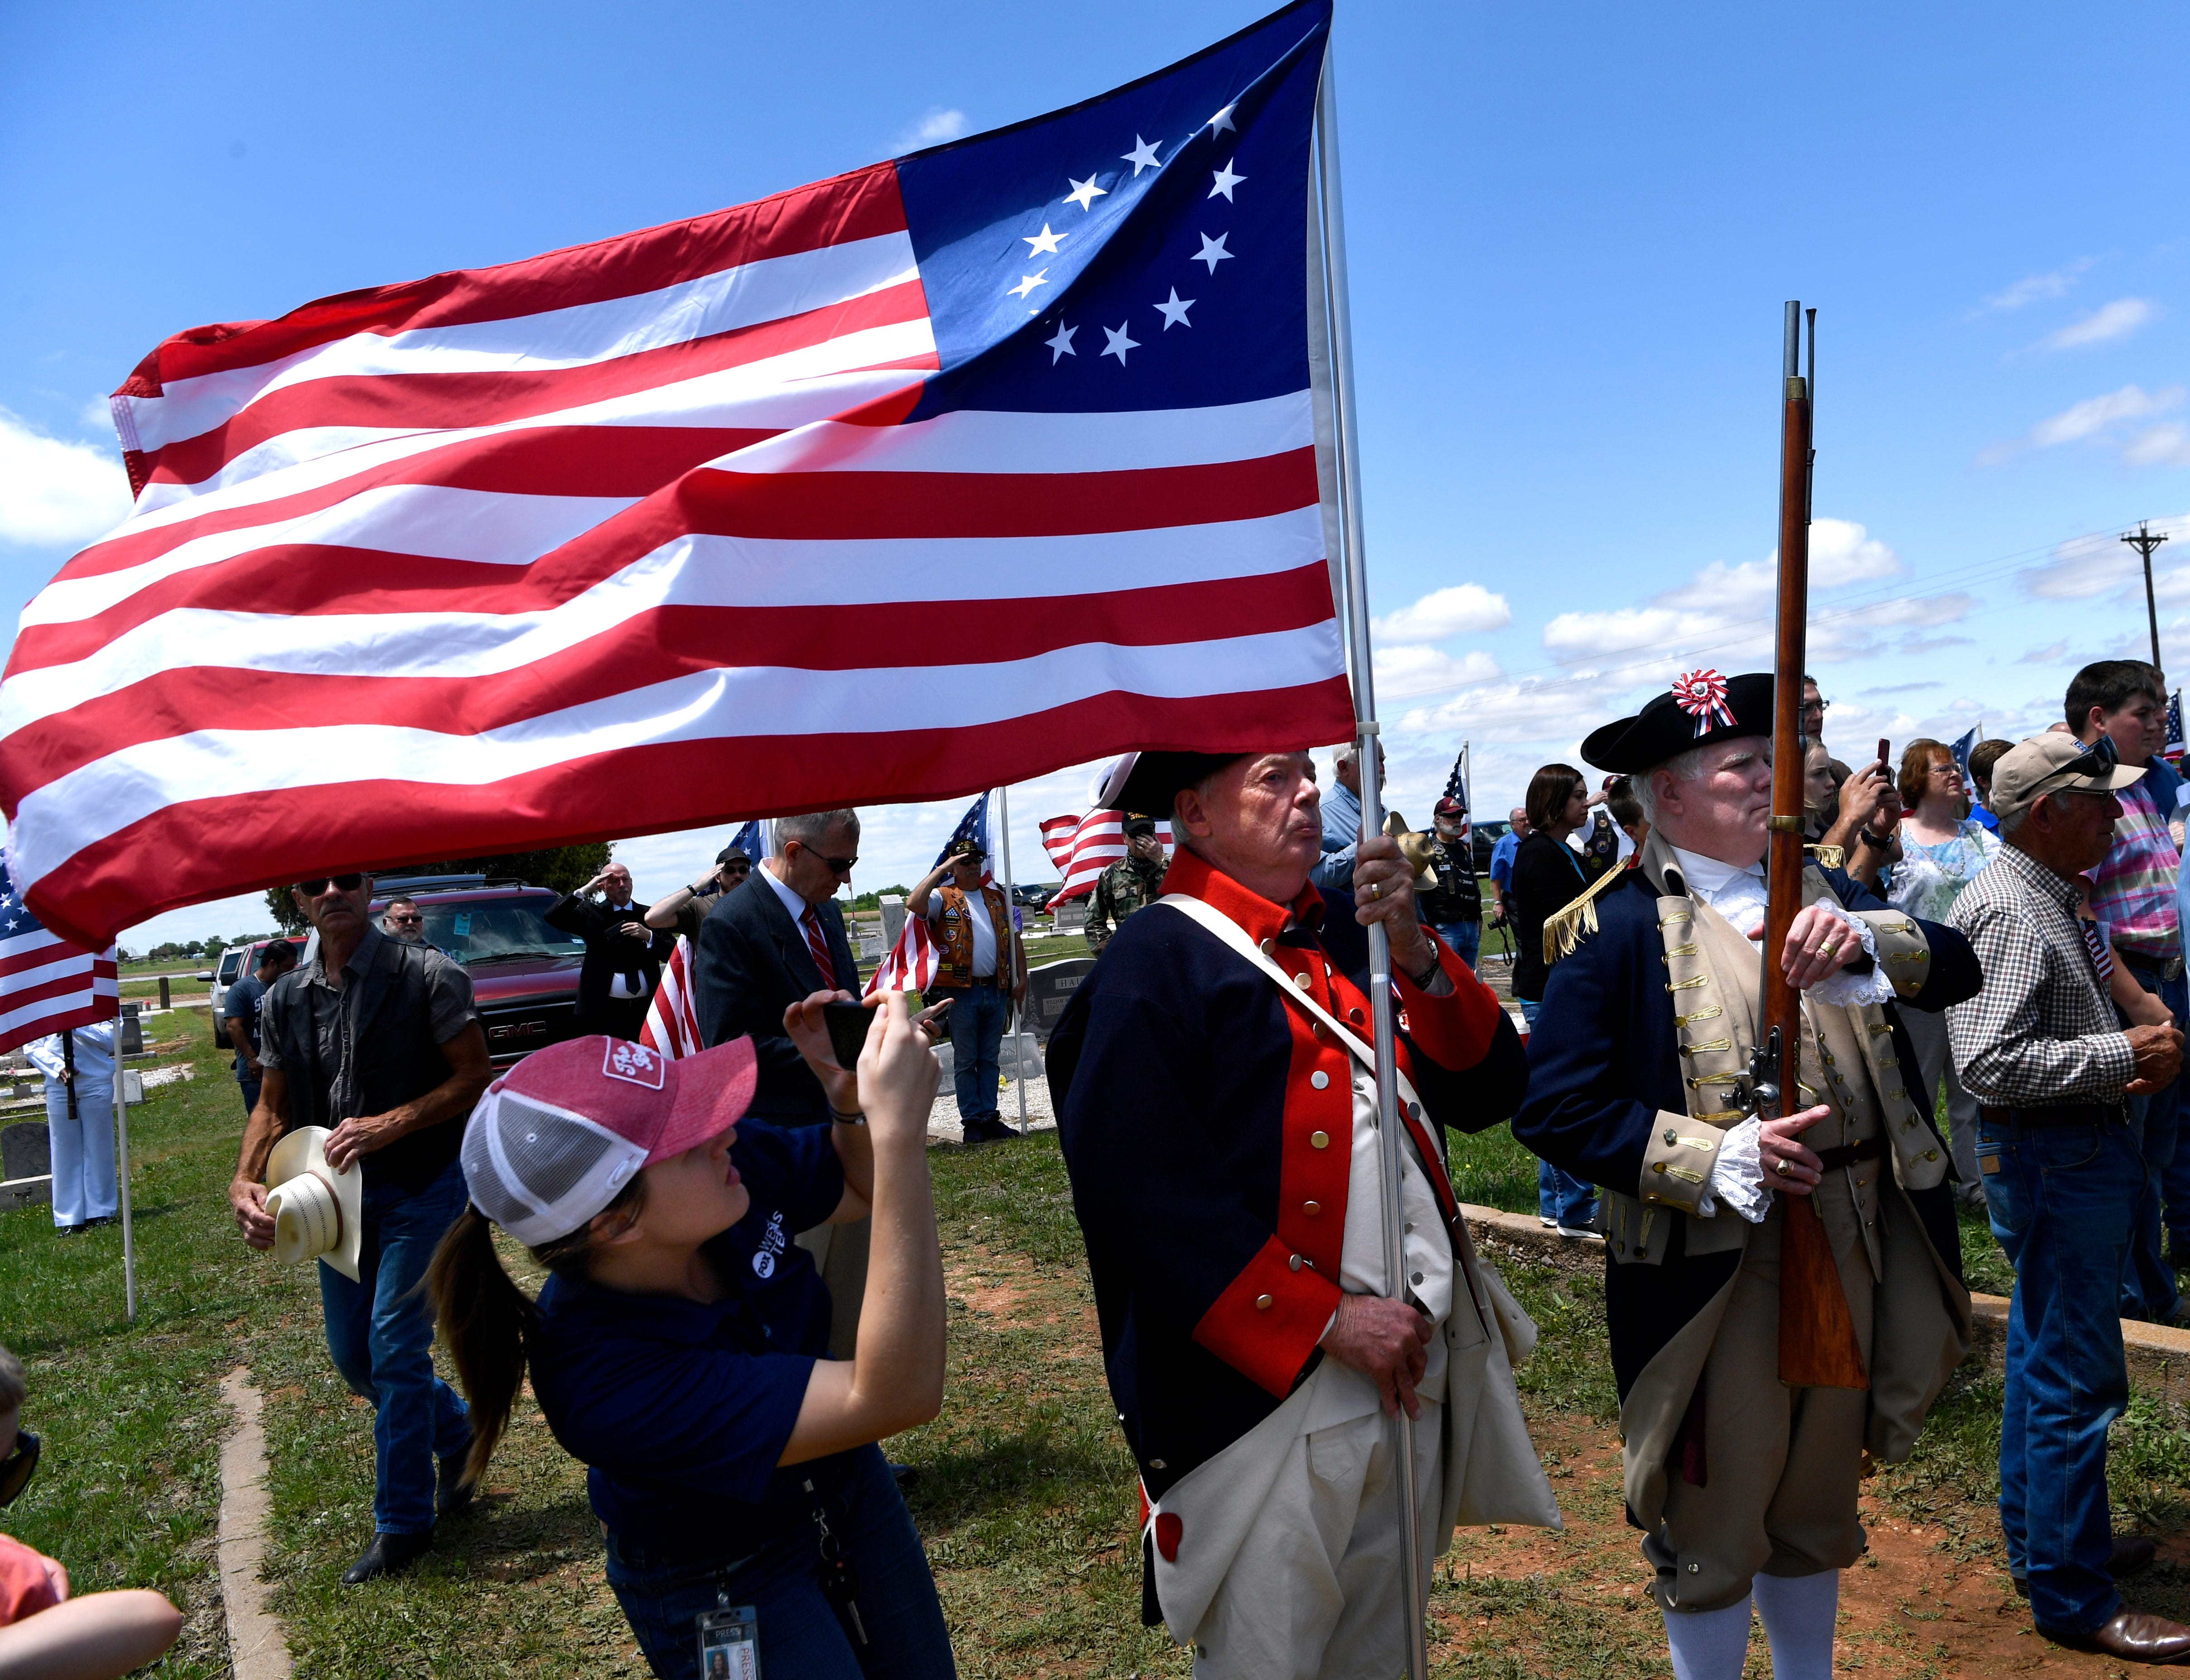 Spectators watch the funeral of Hale McKissack at Fairview Cemetery in Winters, Texas, on Saturday, May 5, 2019. A crowd of veterans, reenactors, and area residents came to pay their respects to McKissack who died during the attack on Pearl Harbor on Dec. 7, 1941.